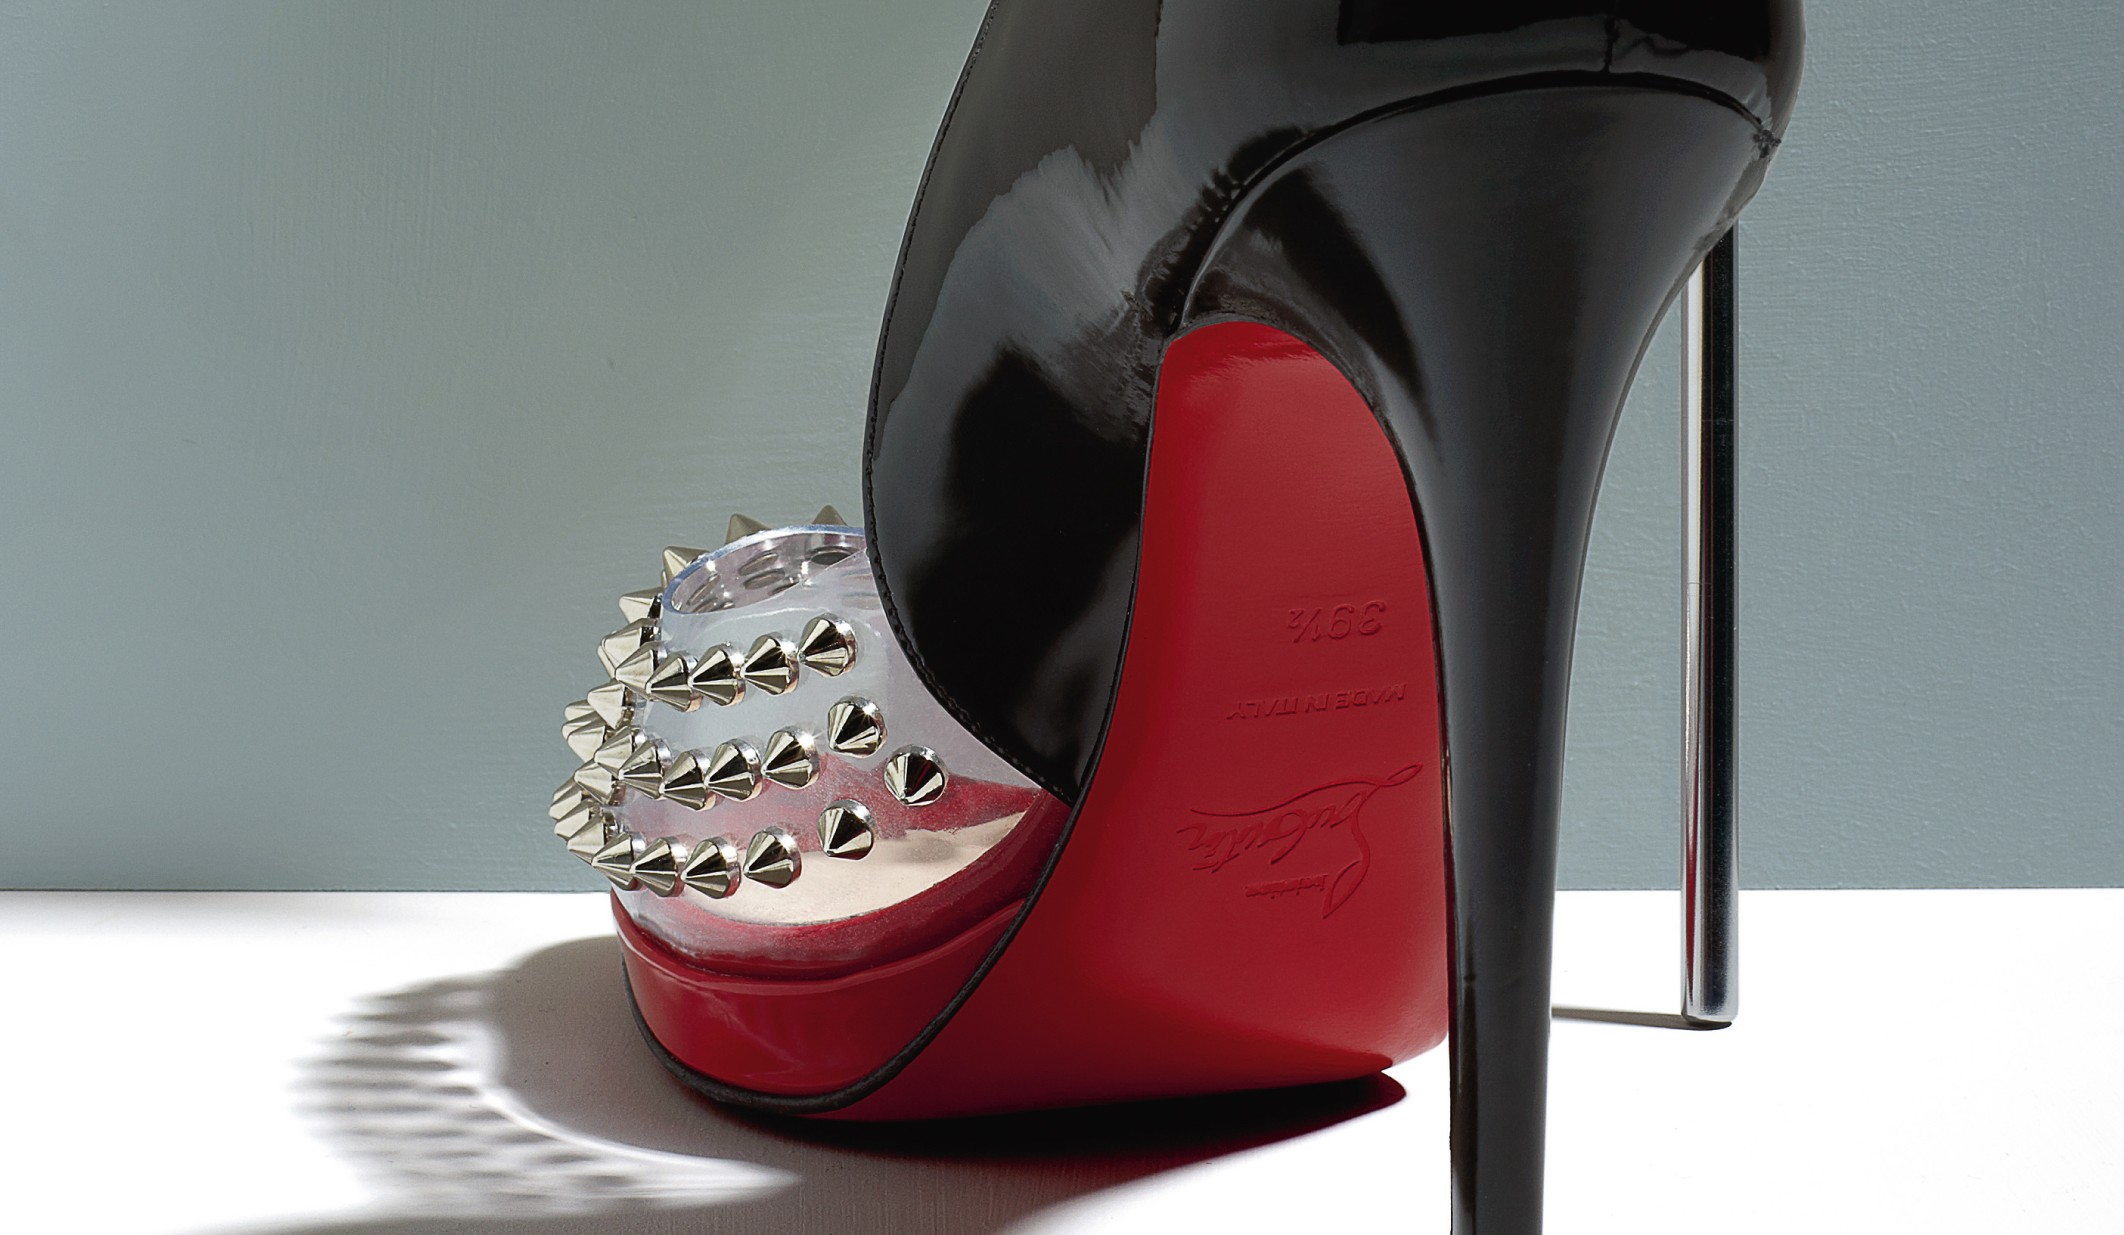 Christian_Louboutin_Engin_Spikes_patent_pvc_peep_toe_pump_sp